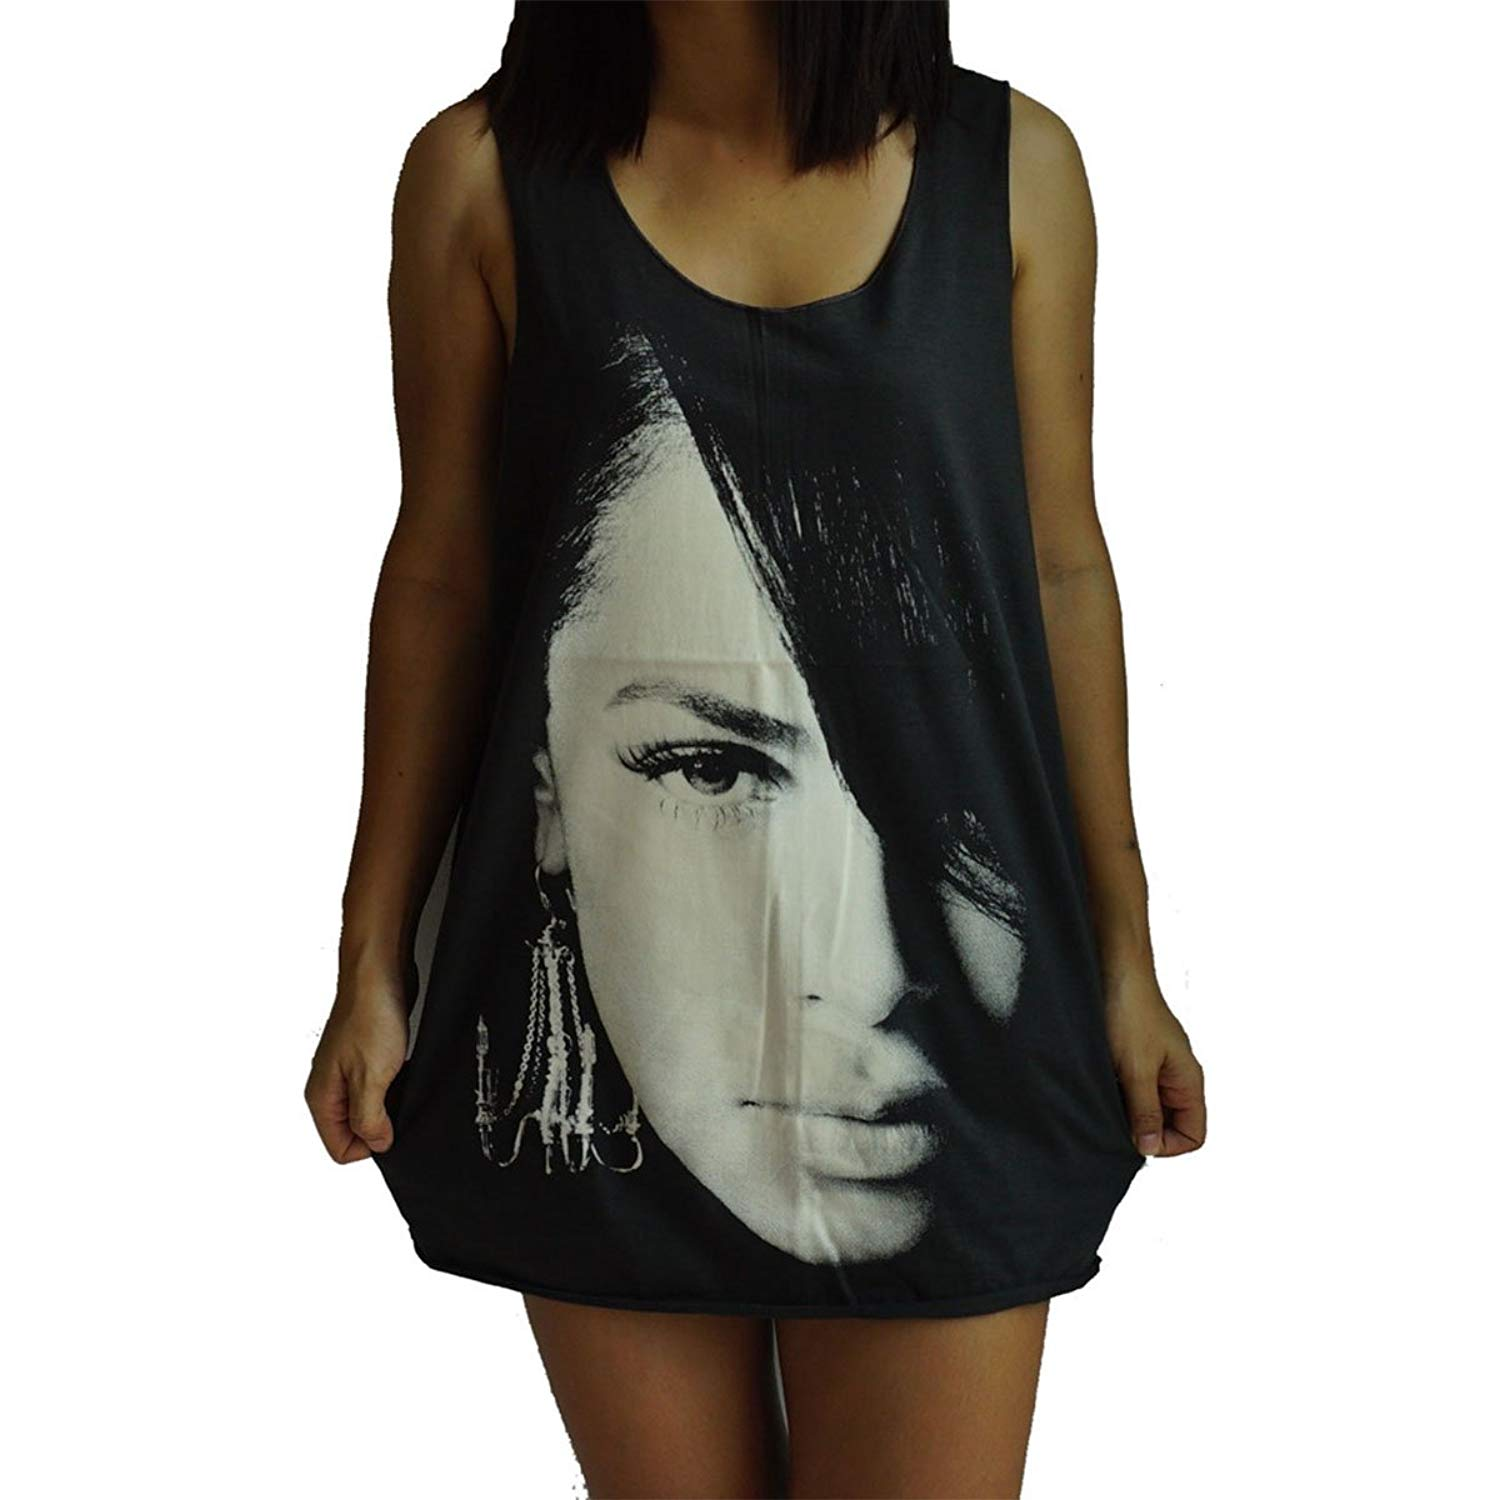 Unisex Aaliyah Vest Tank-Top Singlet Dress Sleeveless T-Shirt